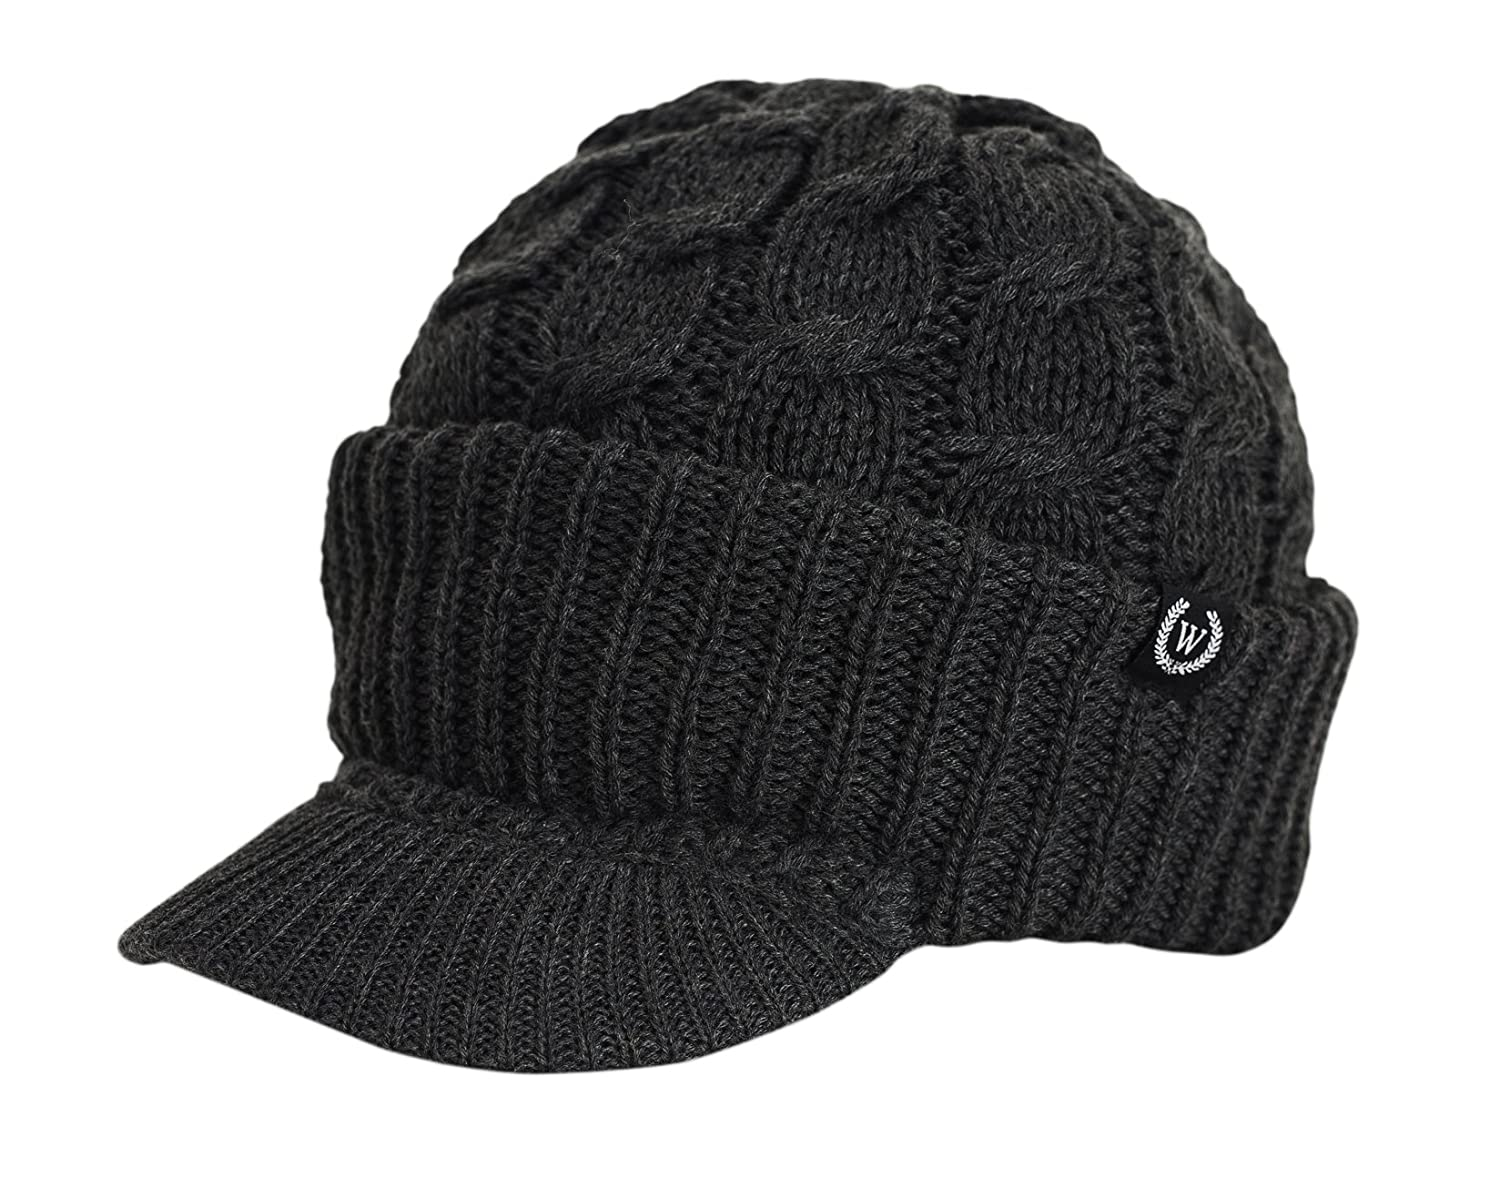 Wonderful Fashion Cable Knitted Hat With Visor Bill Winter Warm Hat For Women Charcoal